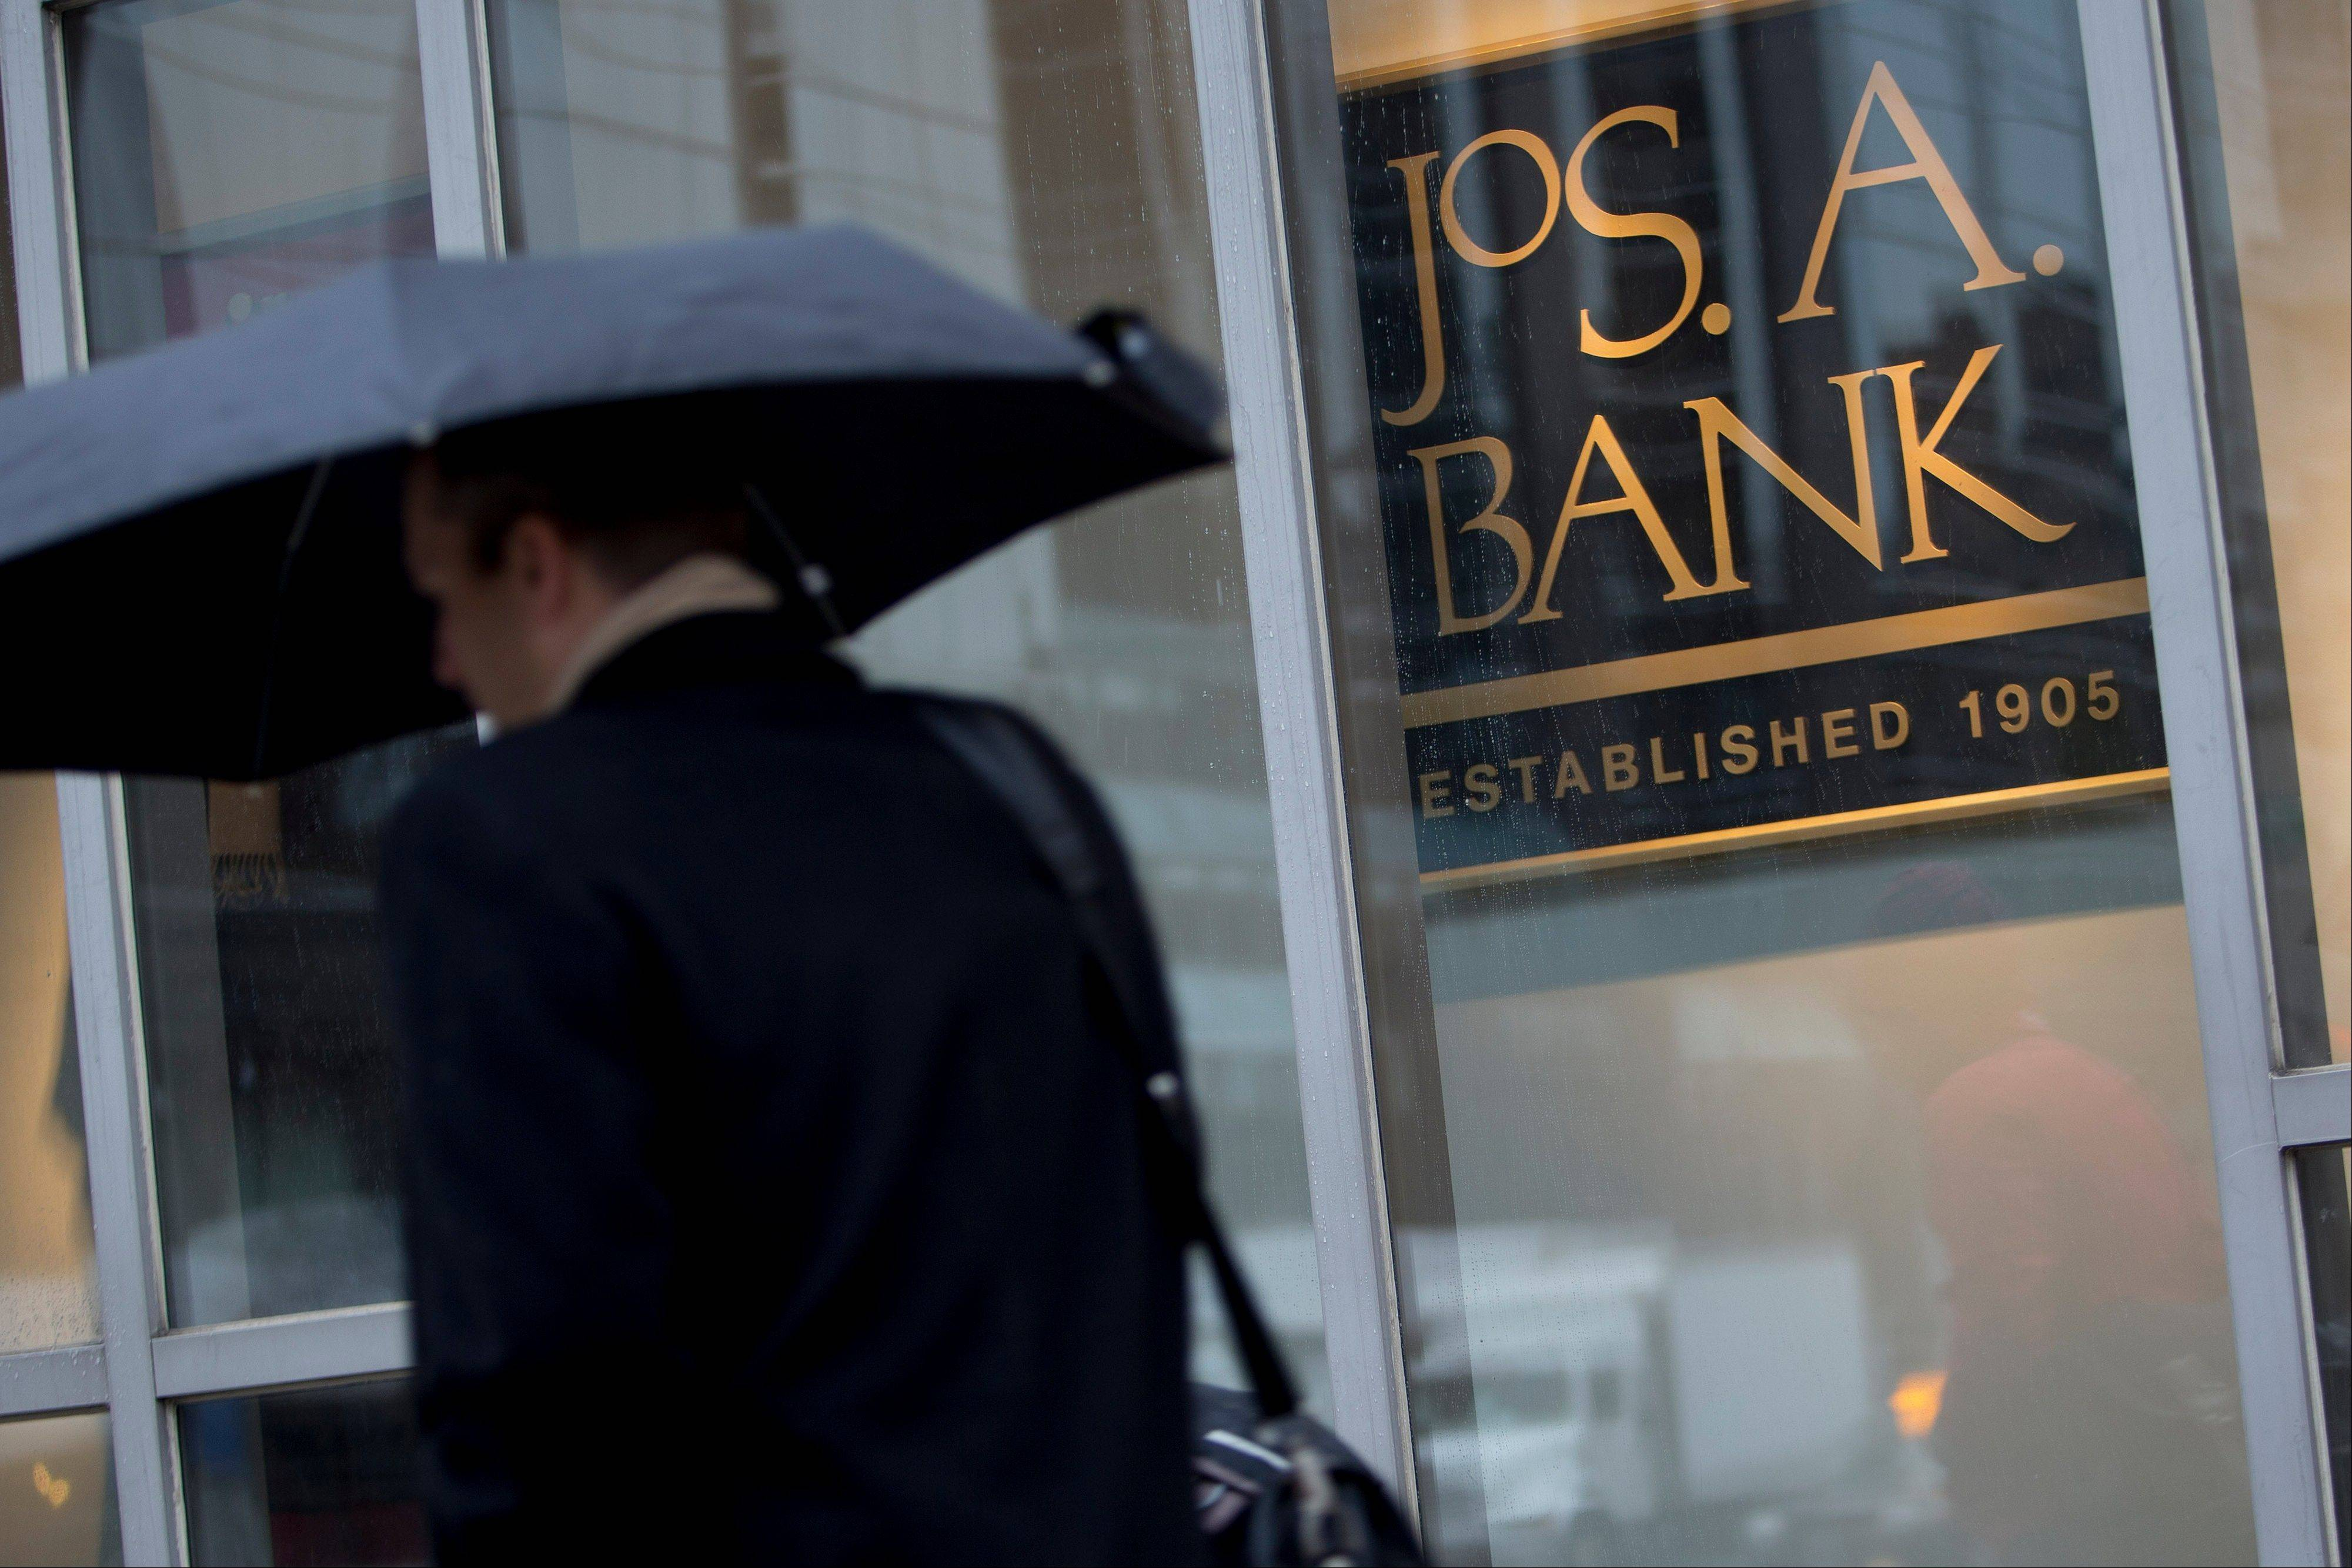 A pedestrian carrying an umbrella walks past a Jos. A. Bank Clothiers Inc. store in Washington, D.C., U.S., on Tuesday, Nov. 26, 2013. Men's Wearhouse Inc., which less than two weeks ago let a takeover bid from Jos. A. Bank Clothiers expire without entering discussions, today offered to buy its smaller rival for about $1.54 billion.